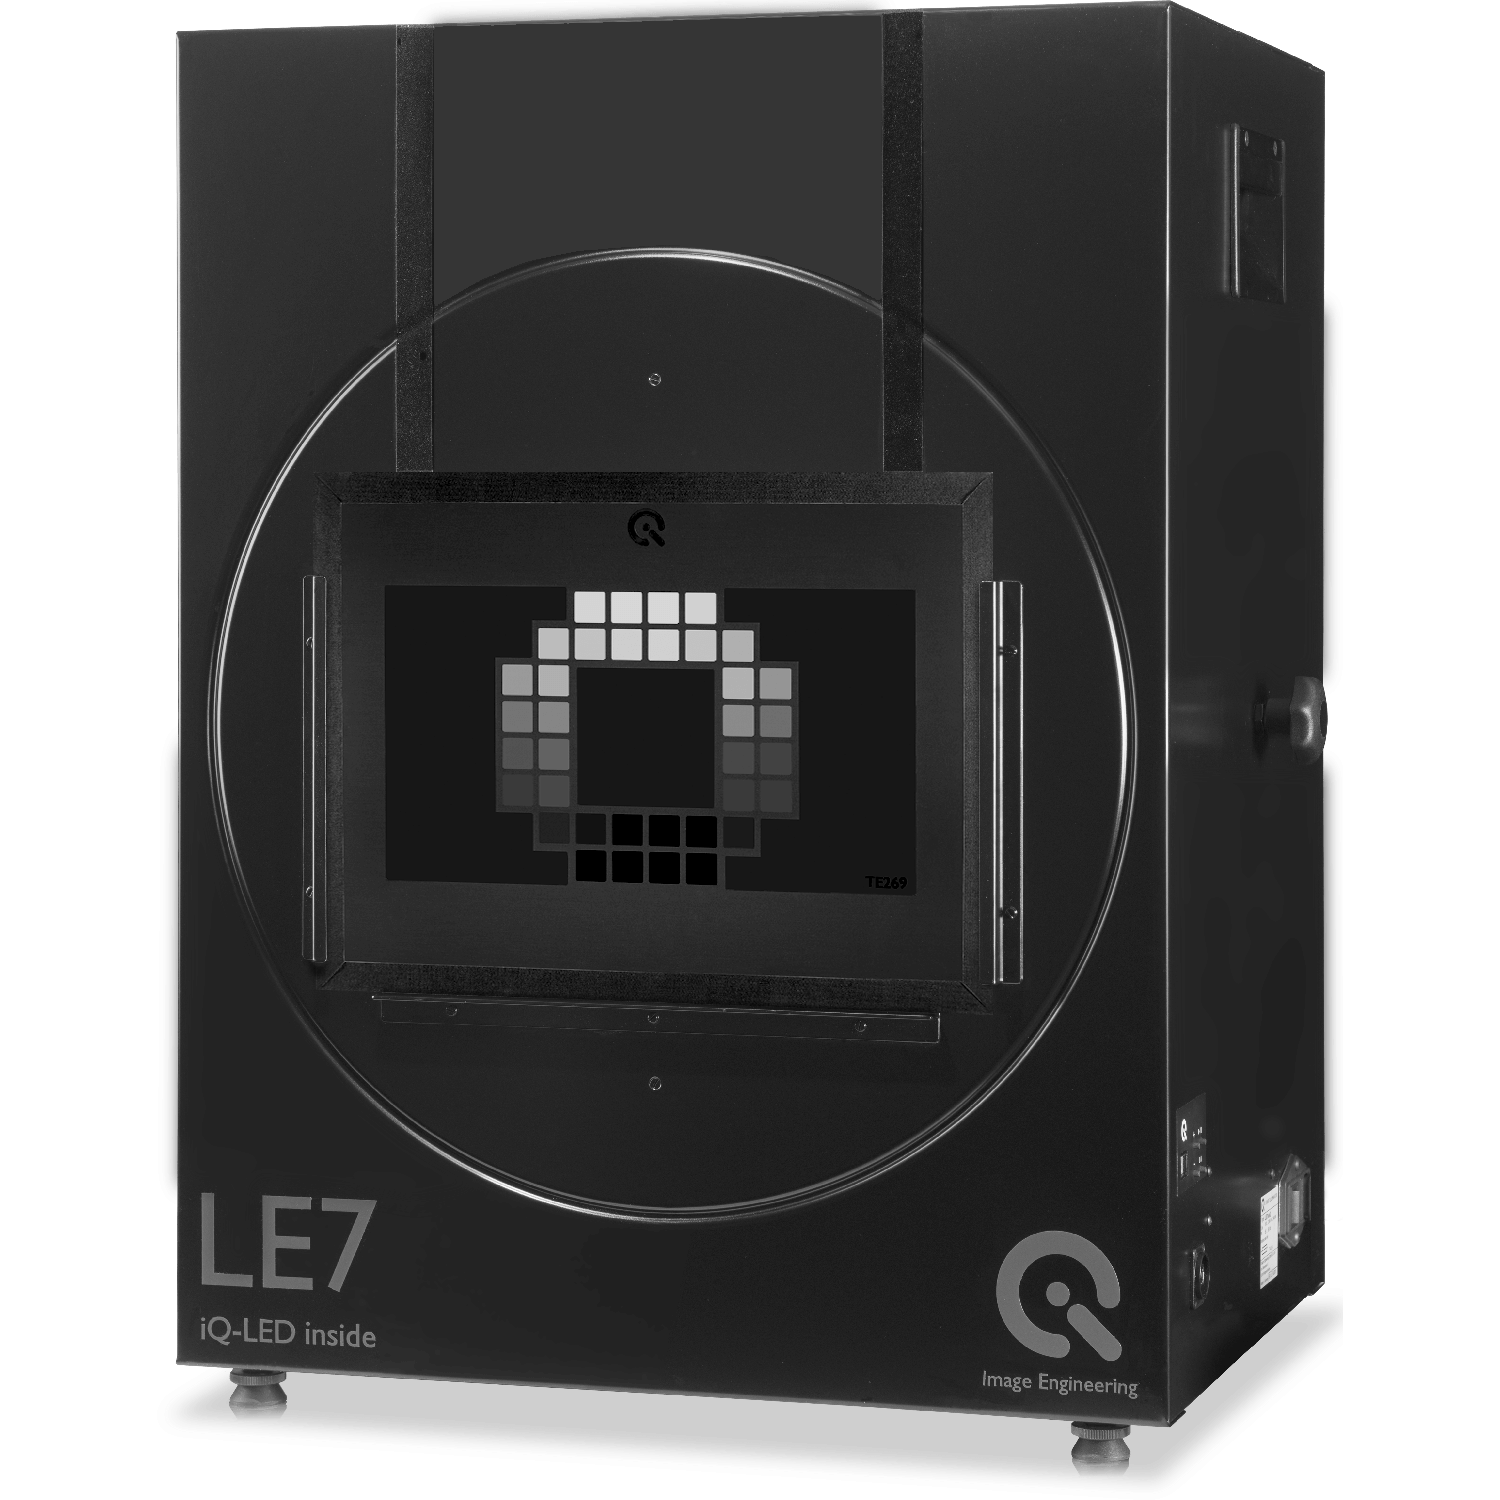 Le7 the iq led is a multi channel led light source that provides the possibility of generating the spectral characteristics of objects color charts nvjuhfo Images